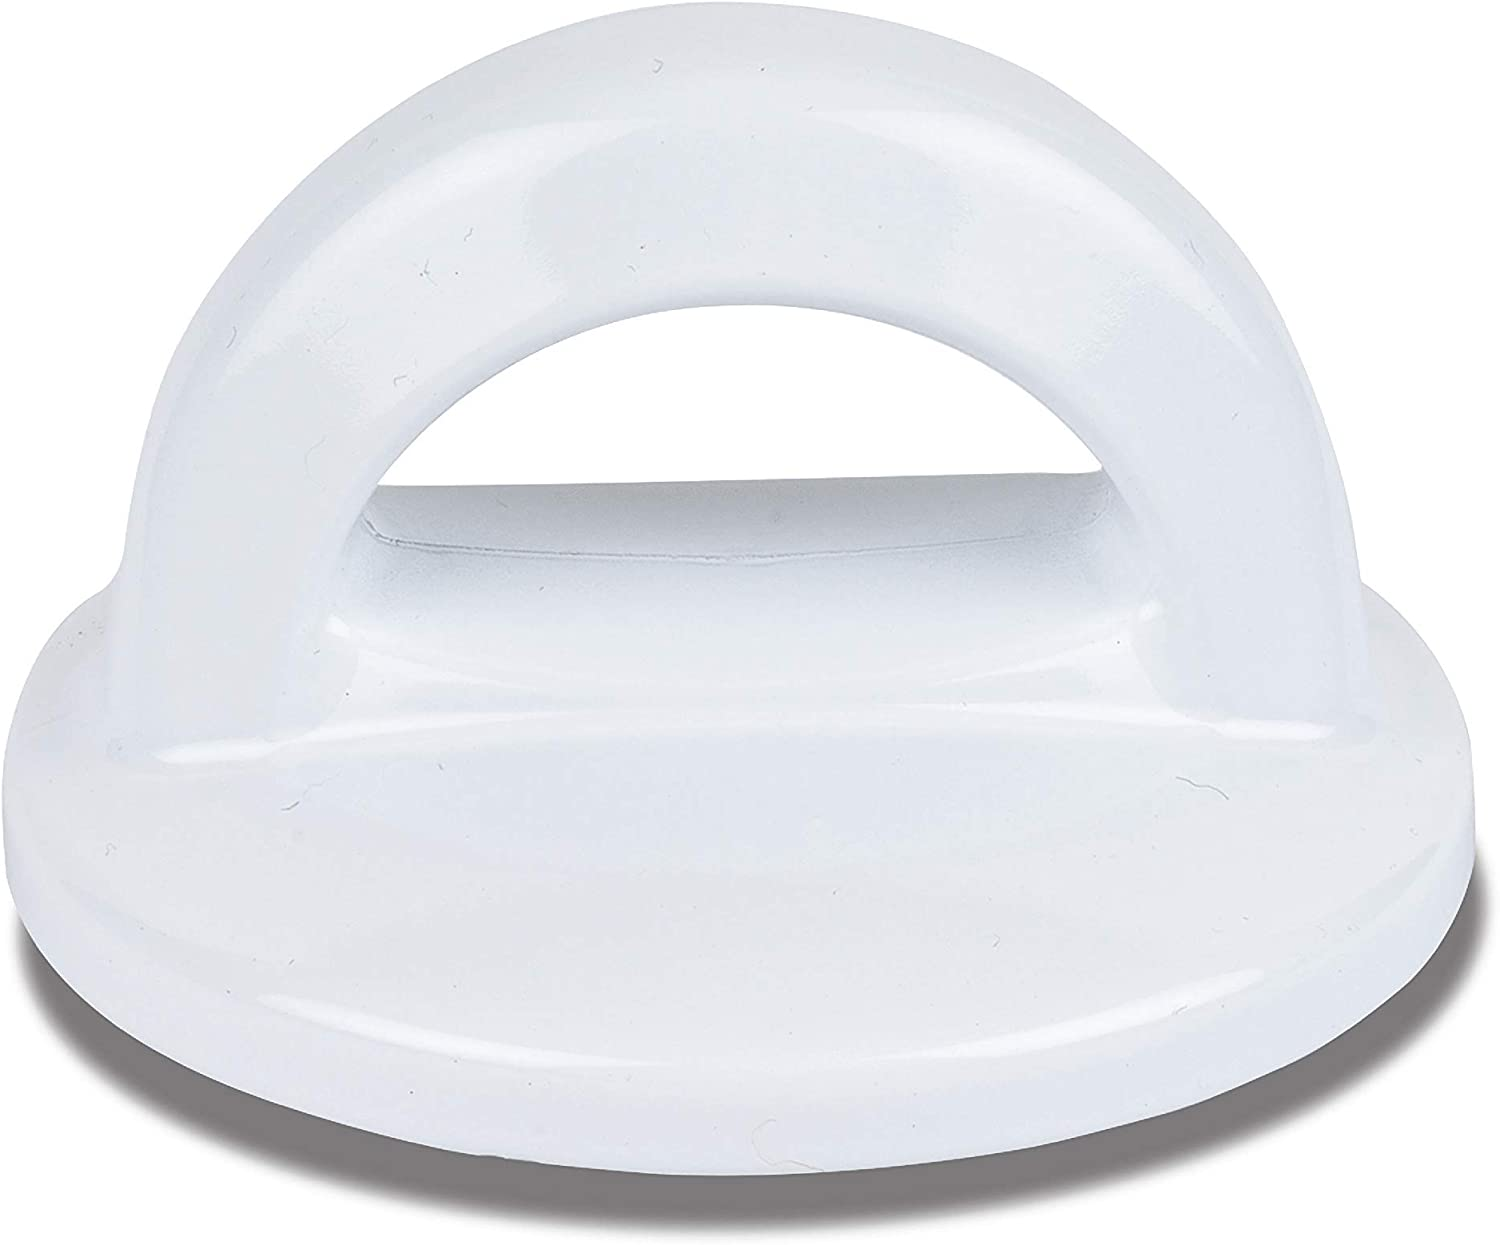 Universal Pot Lid Replacement White Knobs Pan Lid Holding Handles (1 Pack)